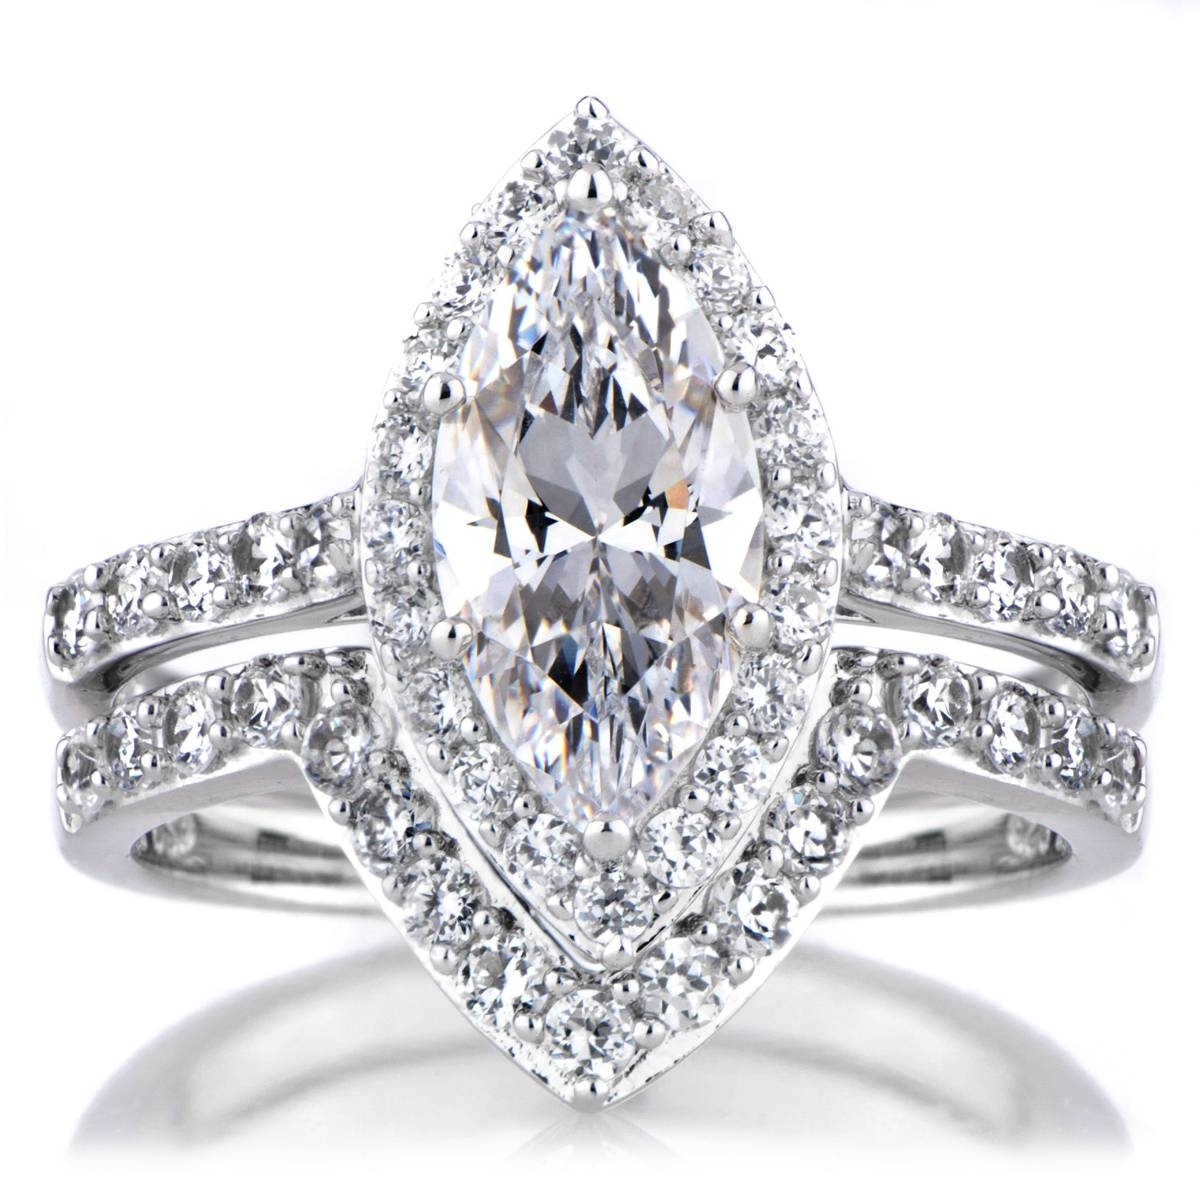 Padgett's Marquise Cut Cz Engagement Ring And Guard Set Intended For Marquis Wedding Bands (Gallery 2 of 15)